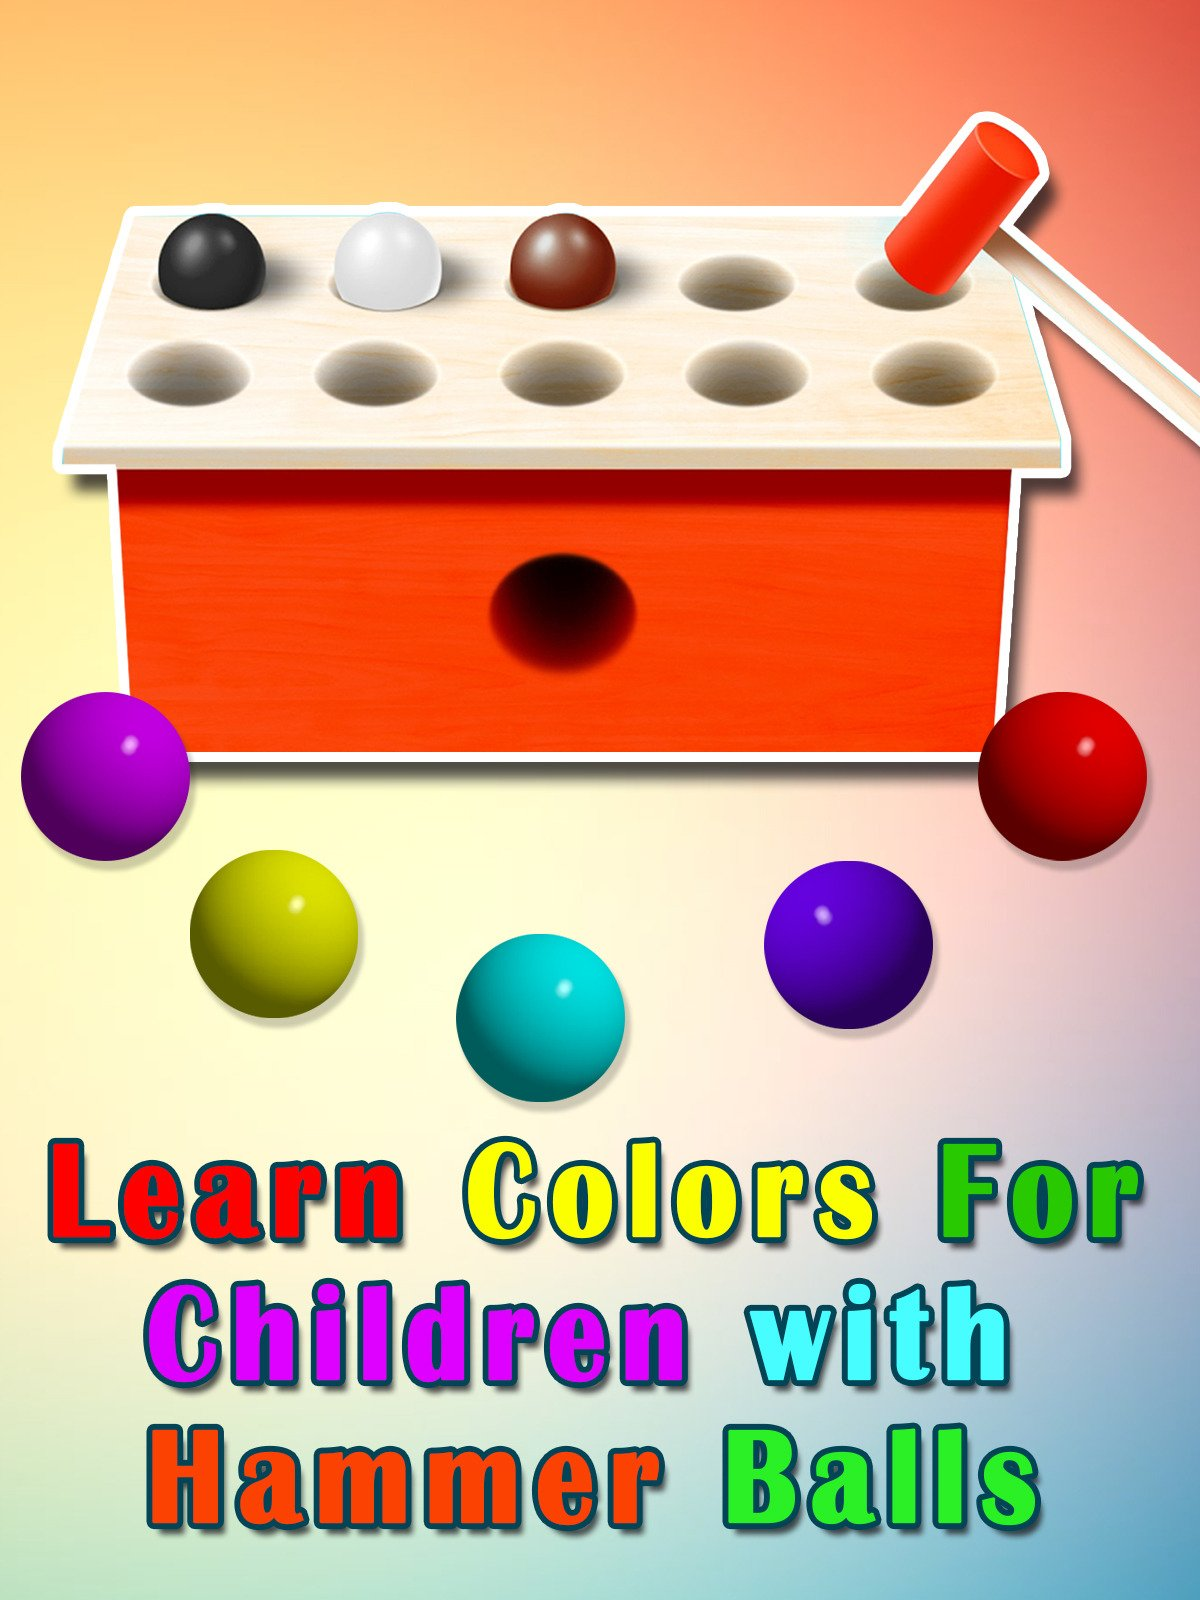 Learn Colors For Children with Hammer Balls